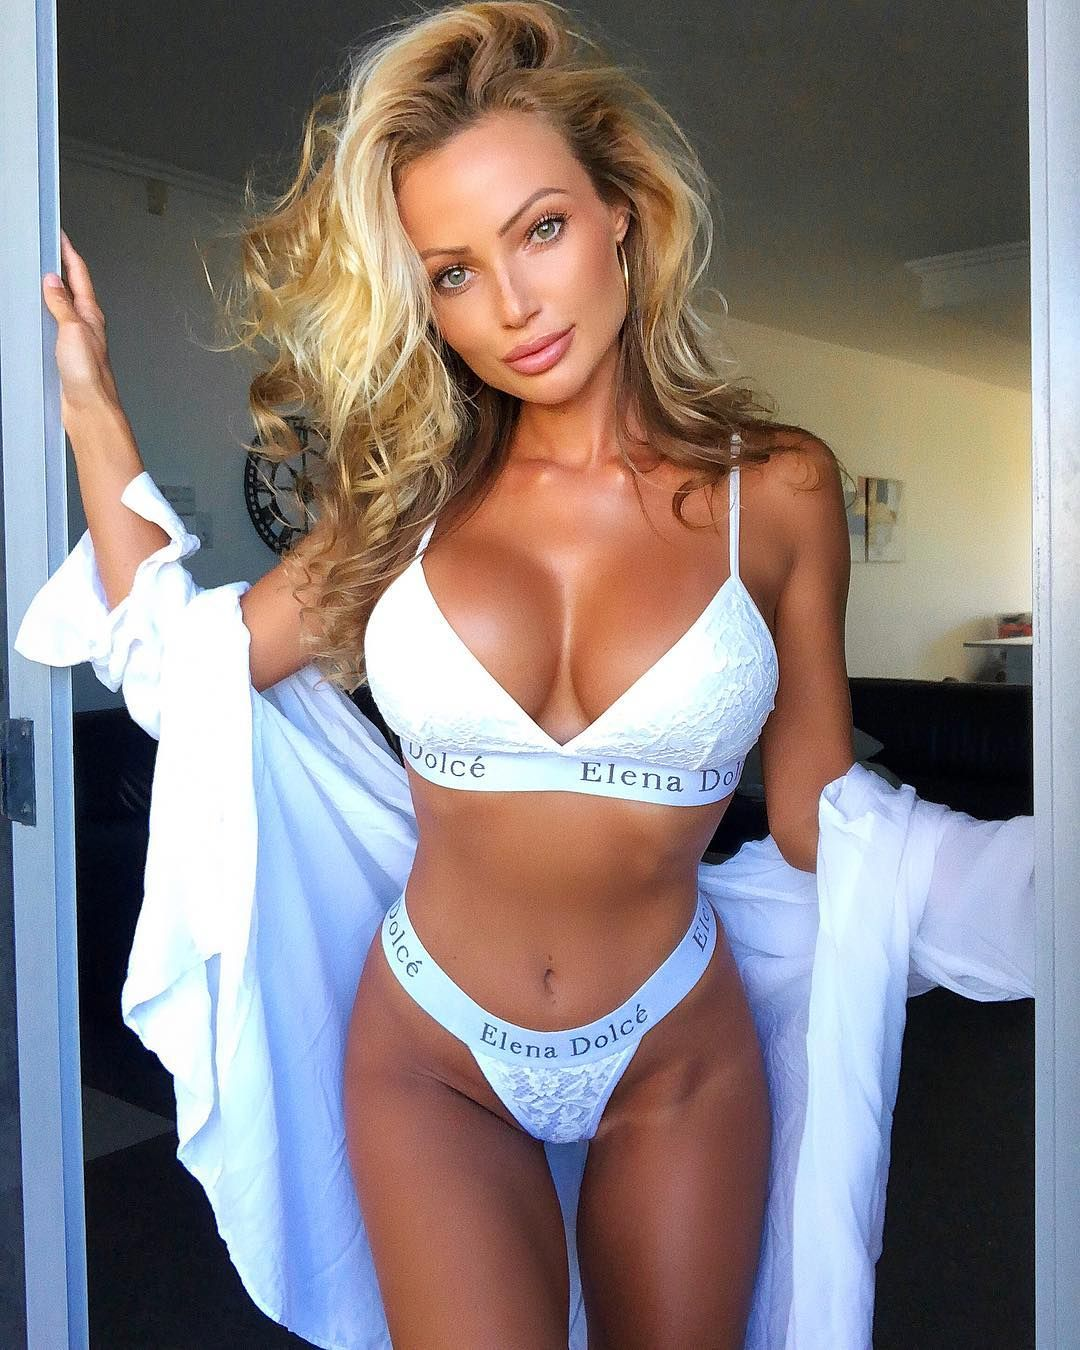 Cleavage Abby Dowse nudes (85 photo), Pussy, Paparazzi, Selfie, panties 2015